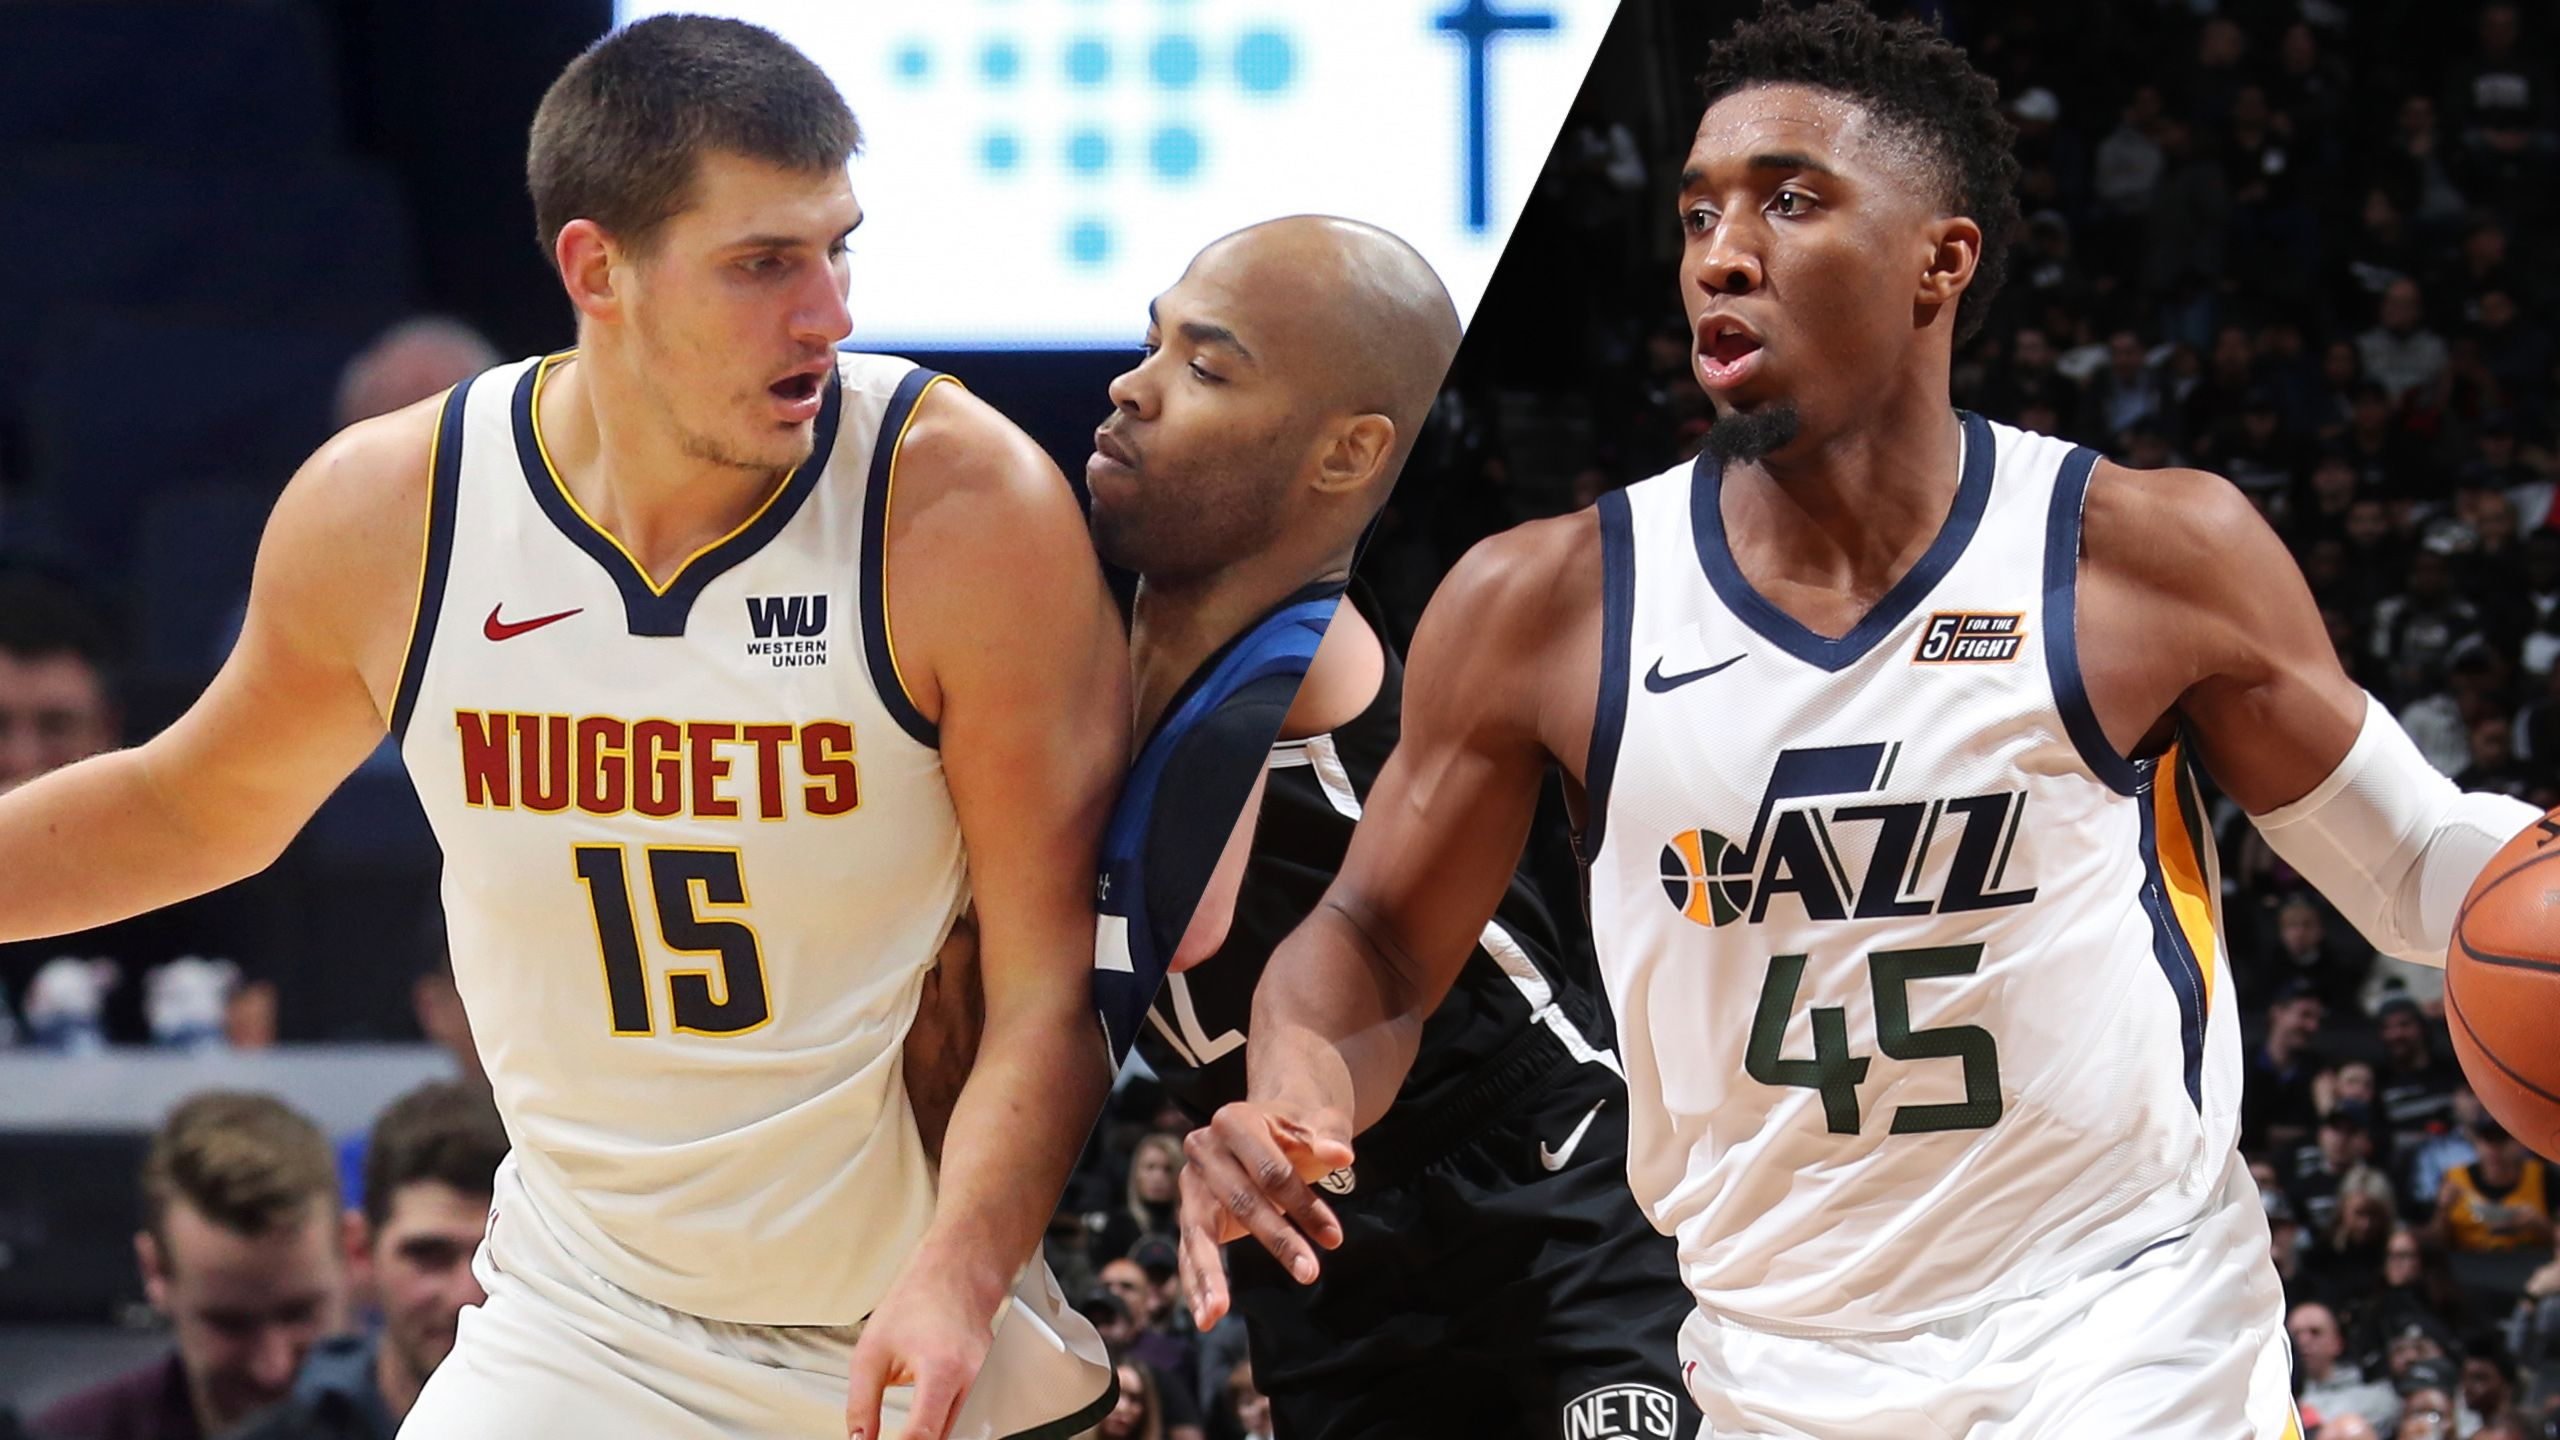 Denver Nuggets vs. Utah Jazz